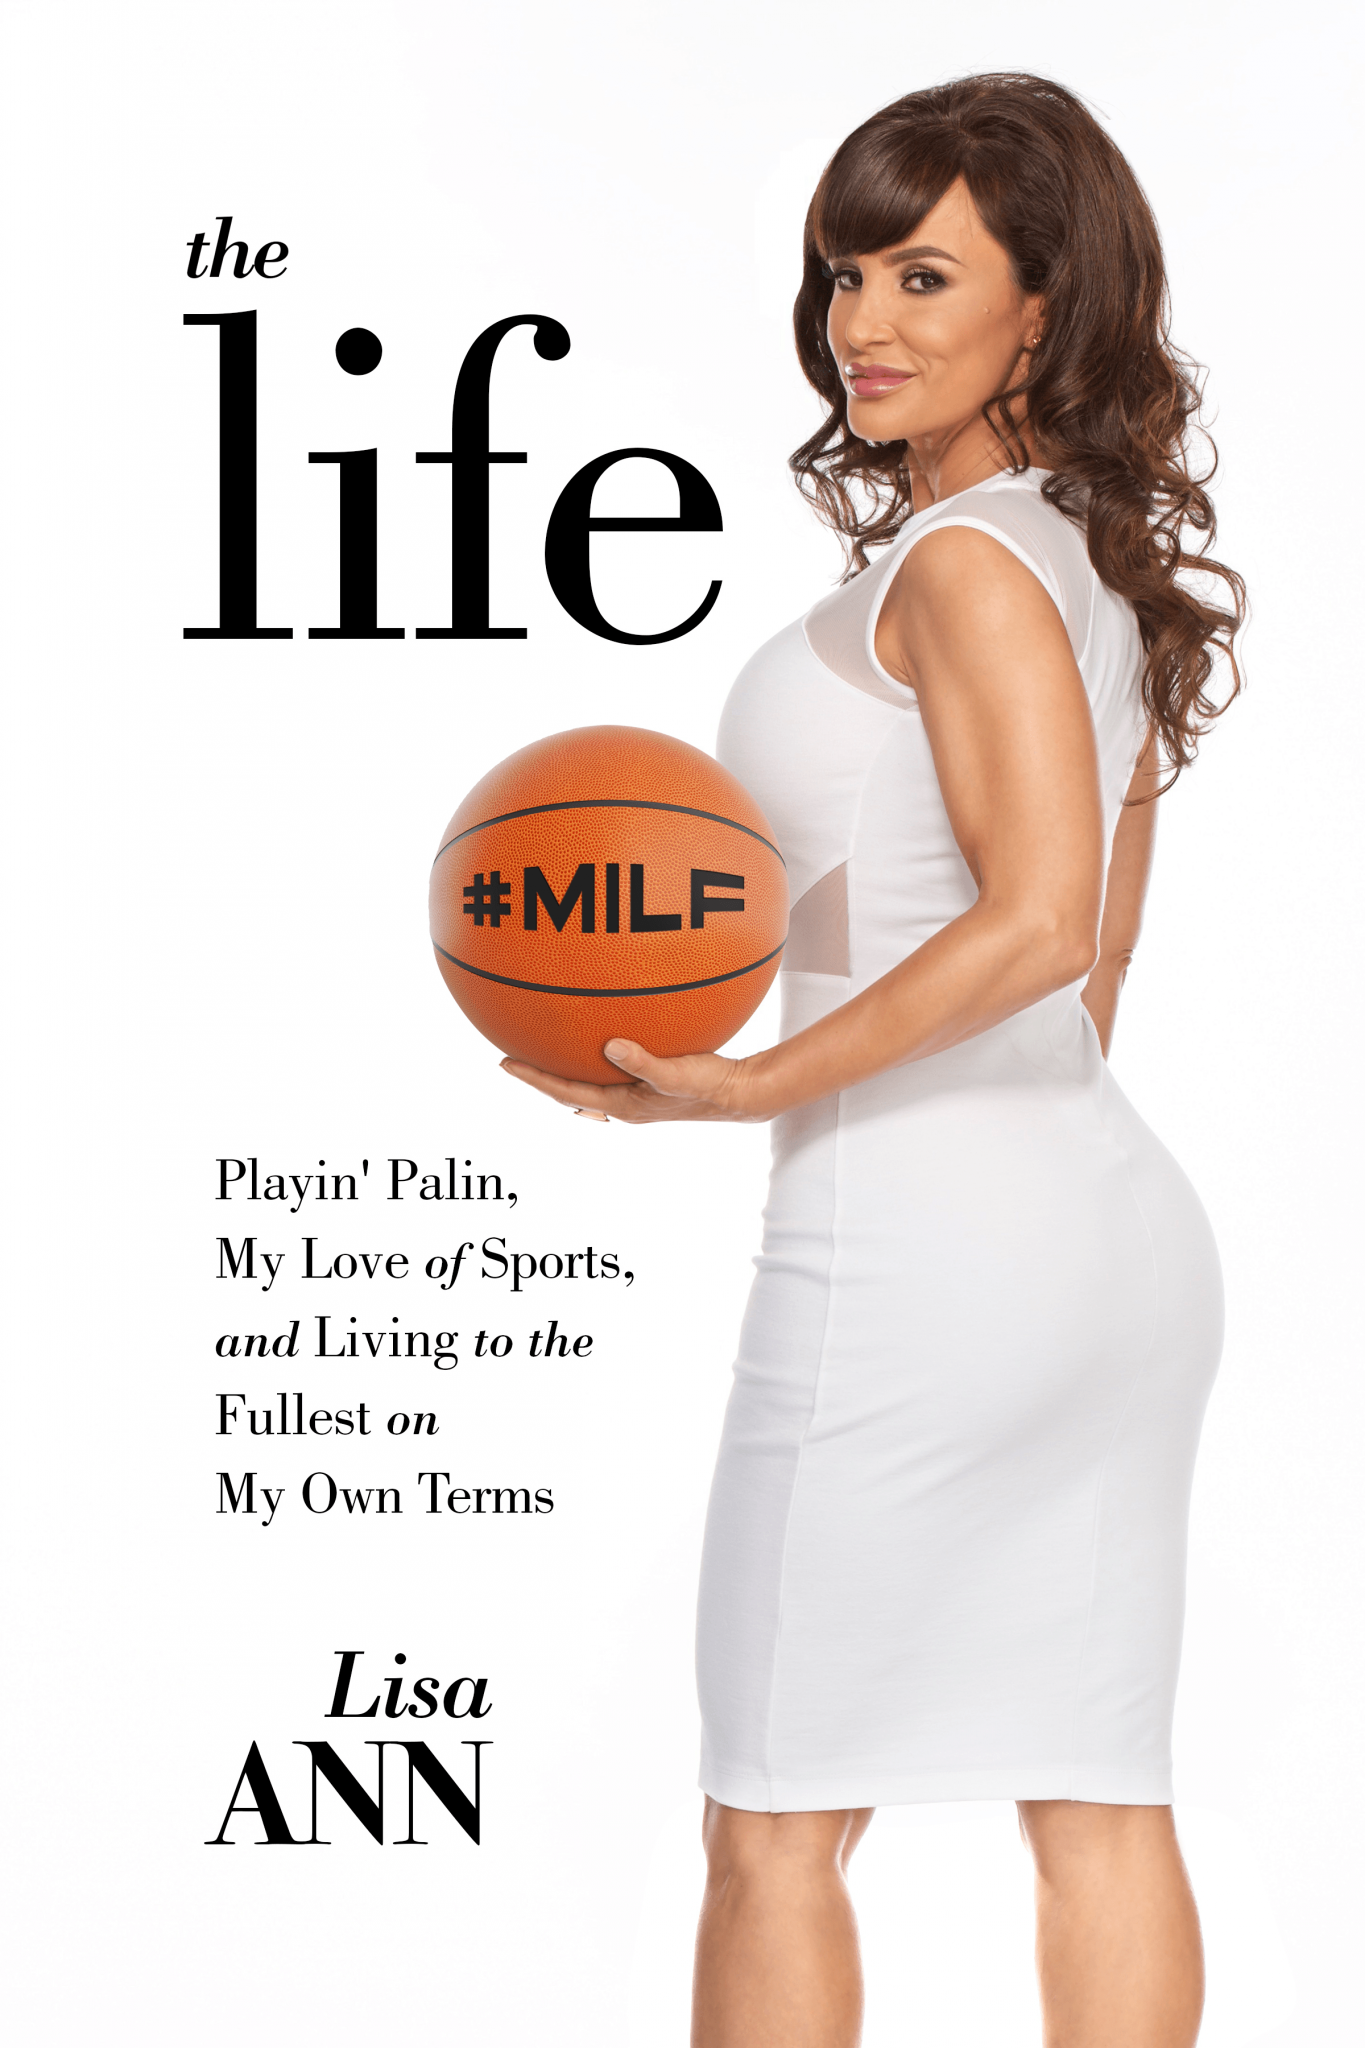 The cover of Lisa Ann's autobiography The Life – Loaded